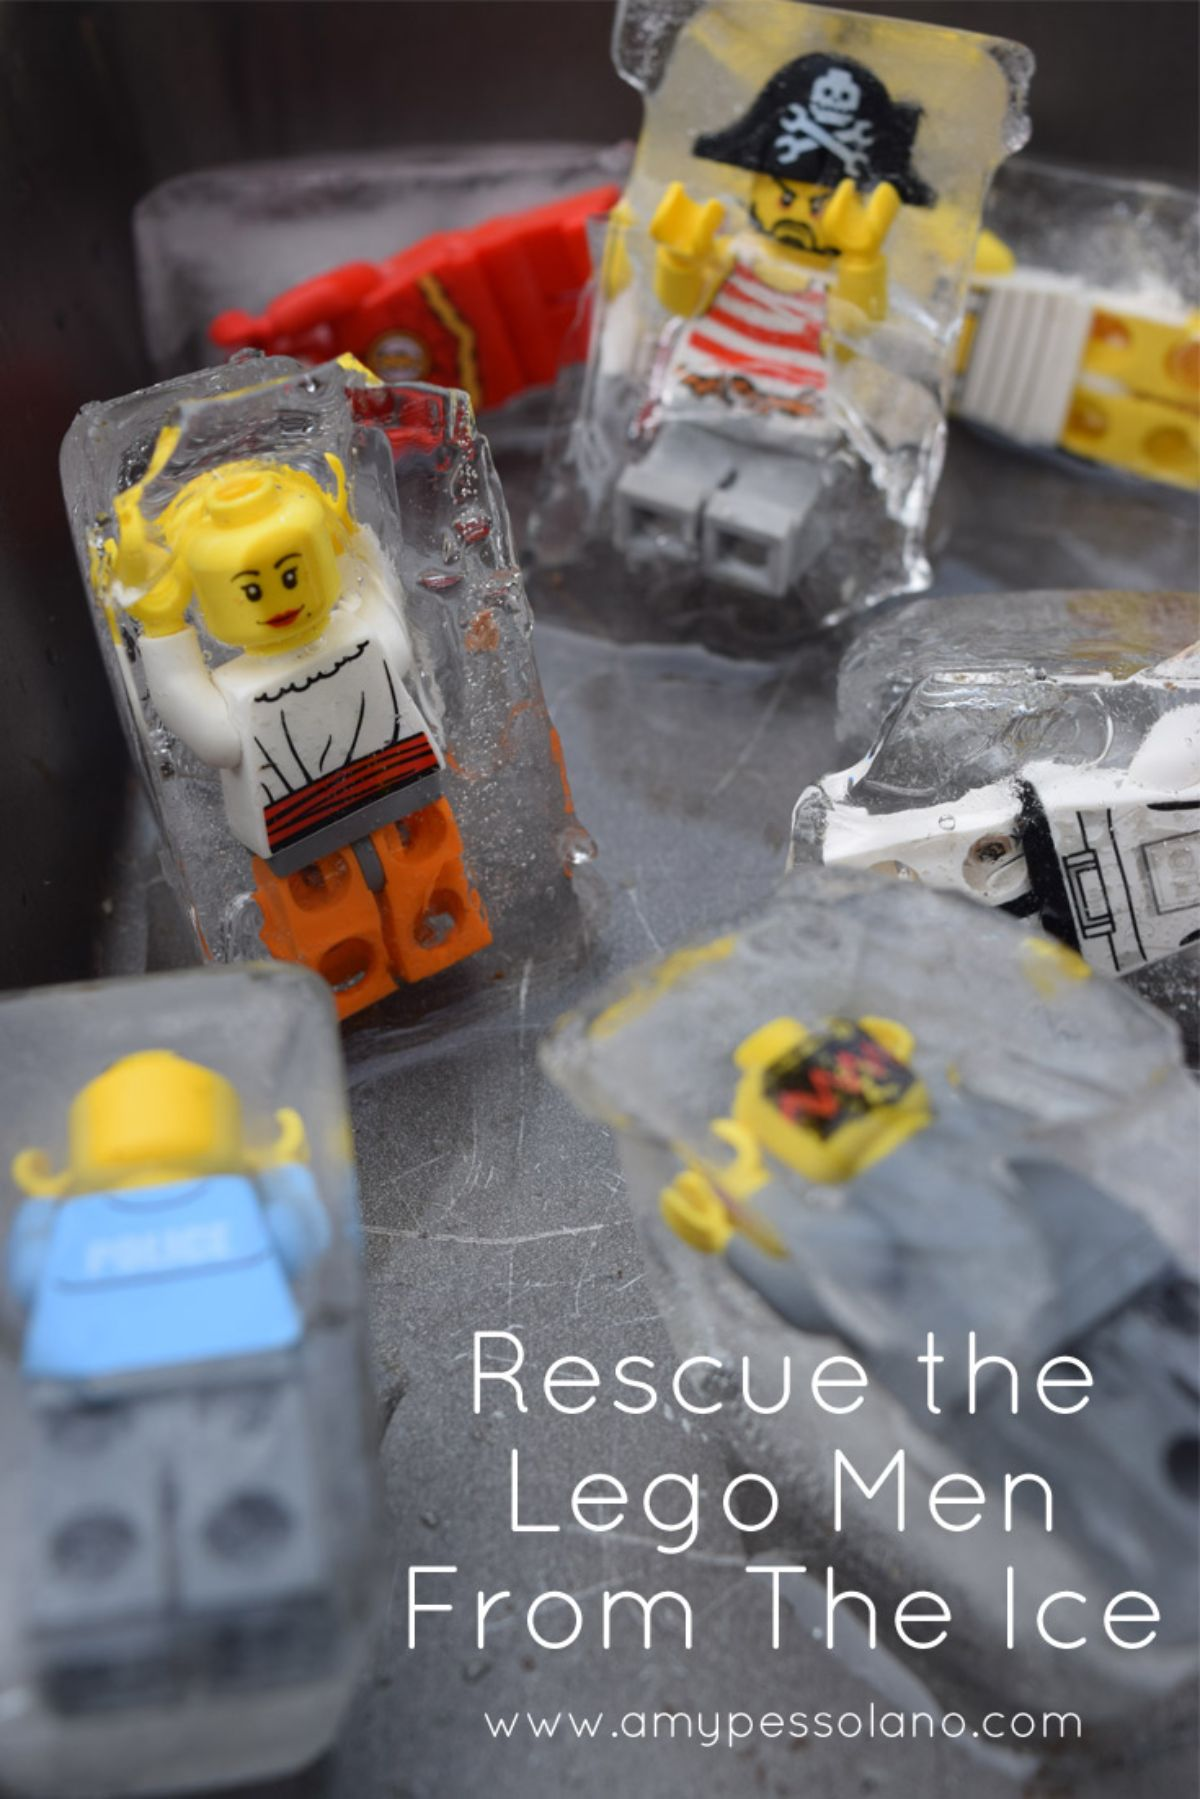 """The text reads """"Rescue the lego men from the ice"""" 7 lego figures are encased in blocks of ice"""